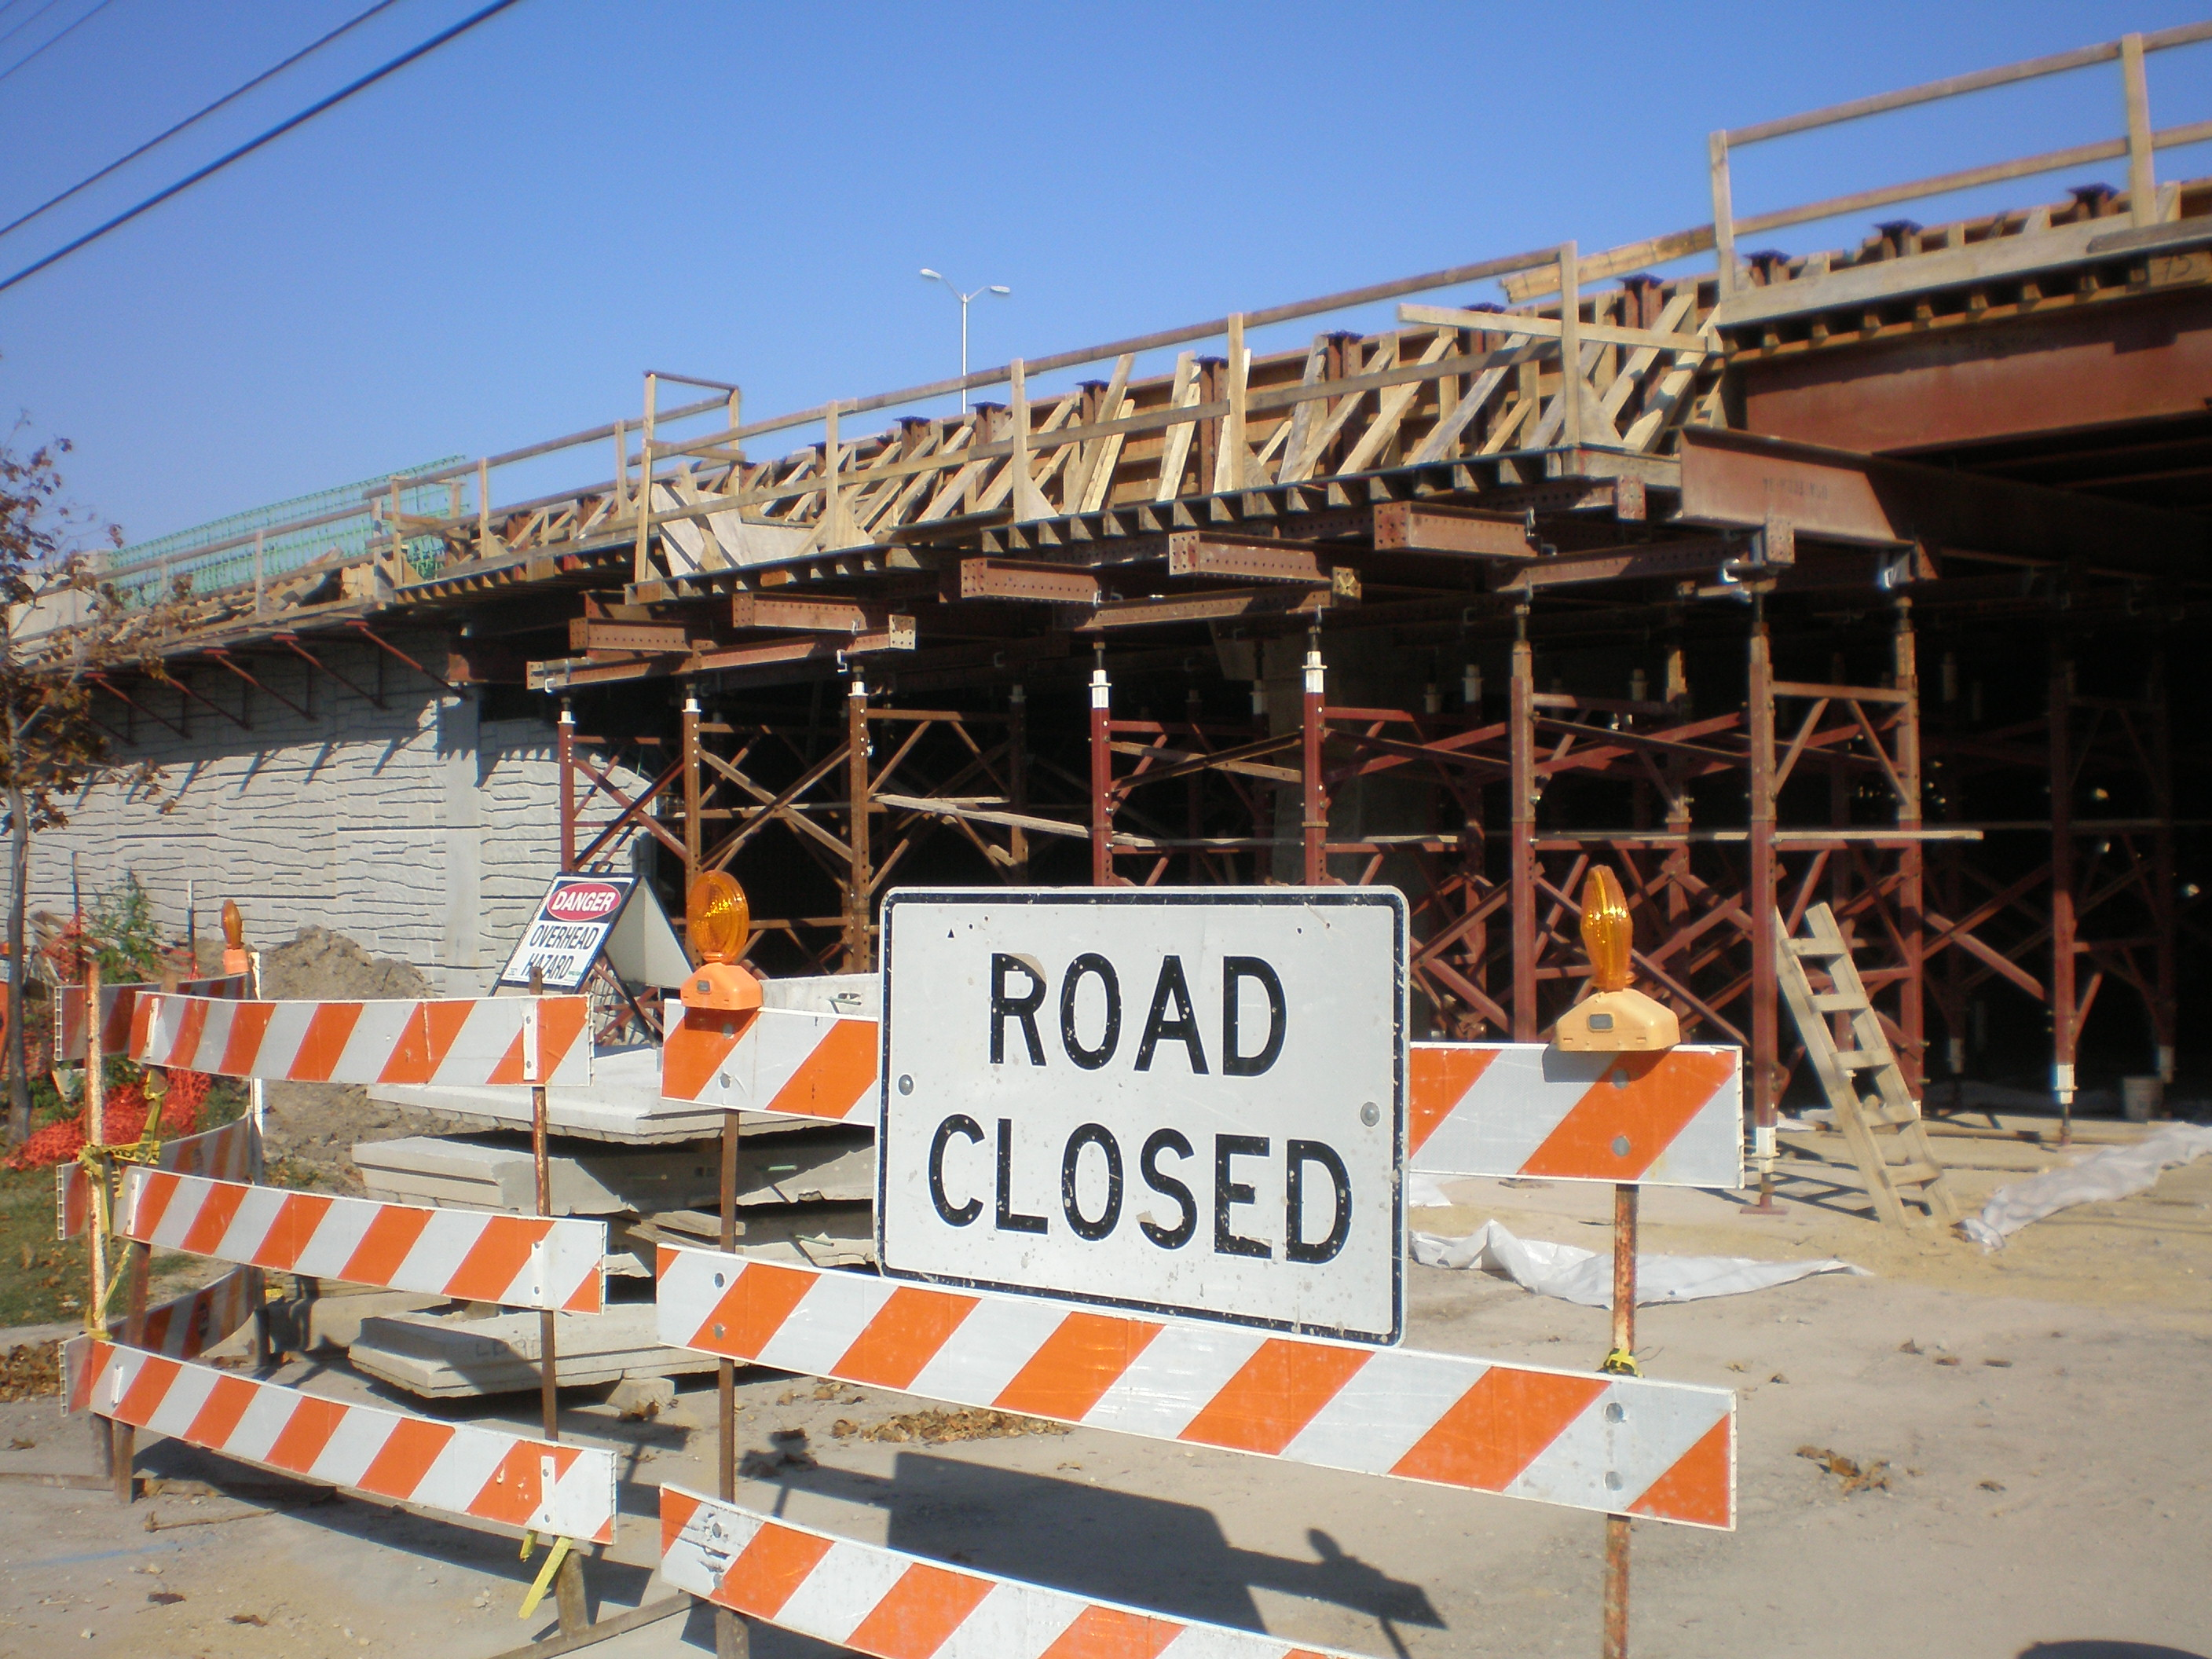 Ald. Bauman urges state to allocate more transportation funding to local projects